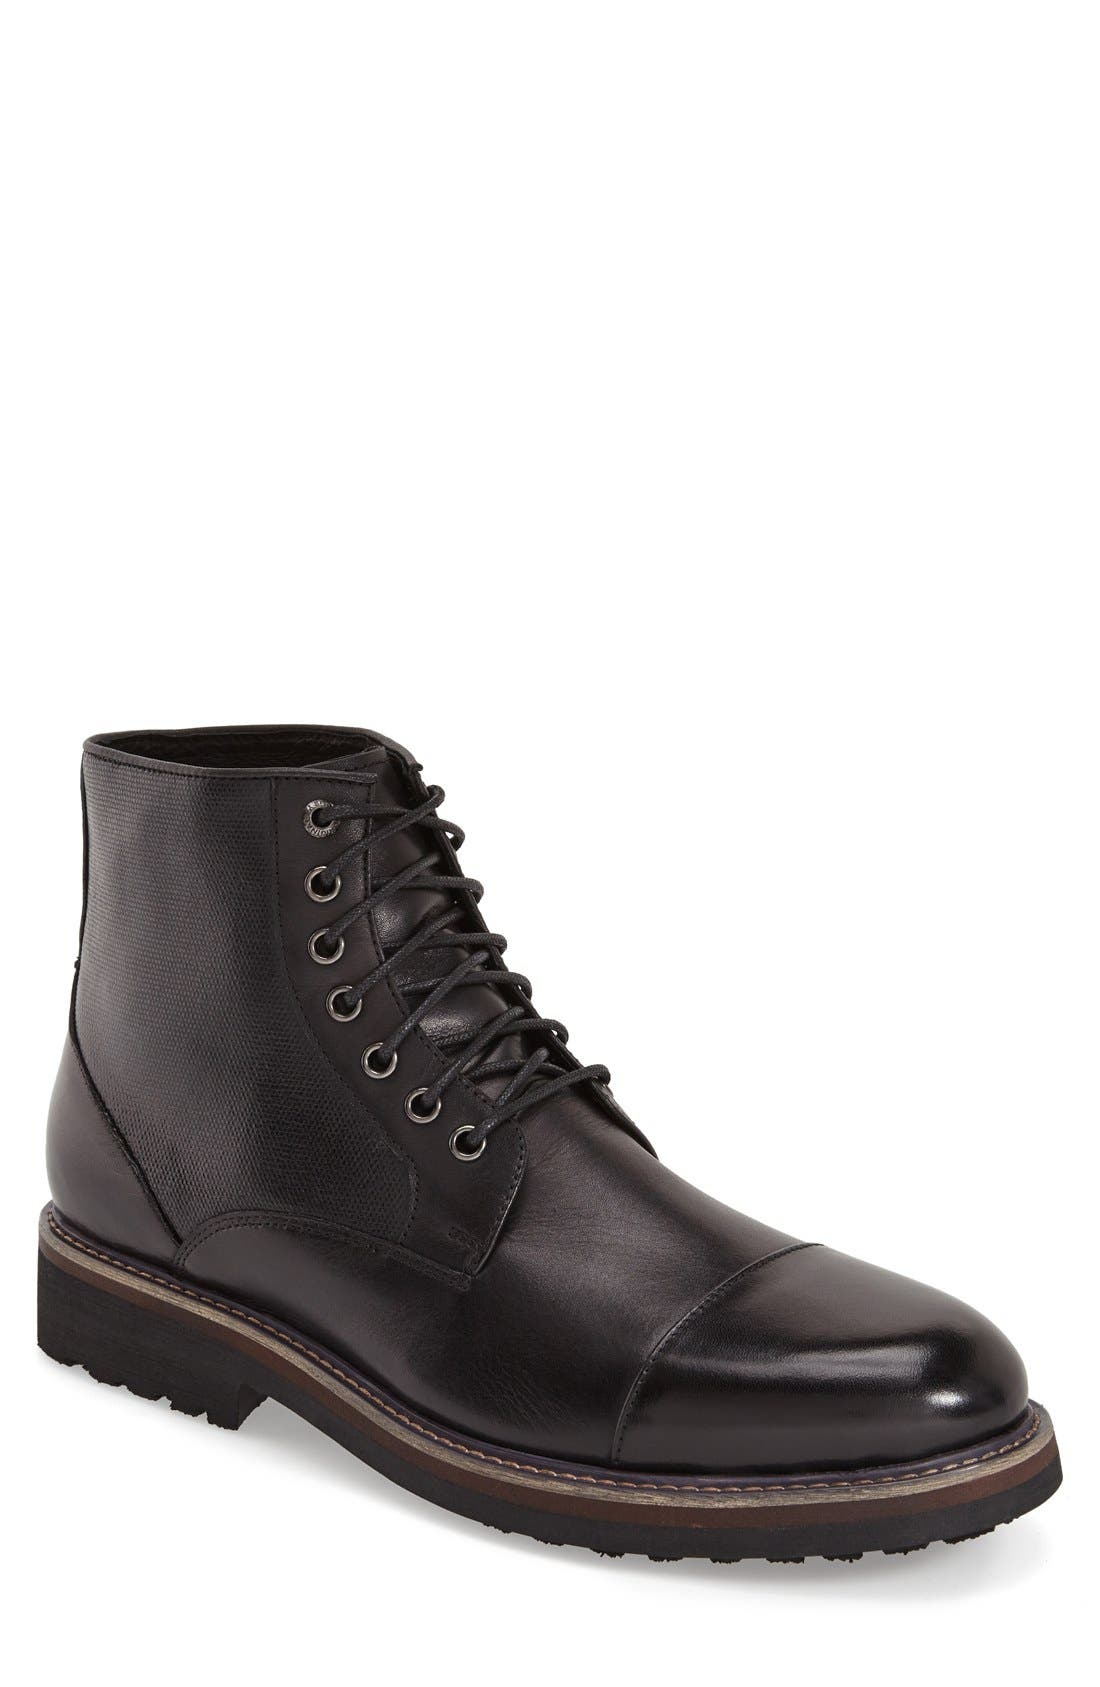 'Northstar' Cap Toe Boot,                             Main thumbnail 1, color,                             Black Leather